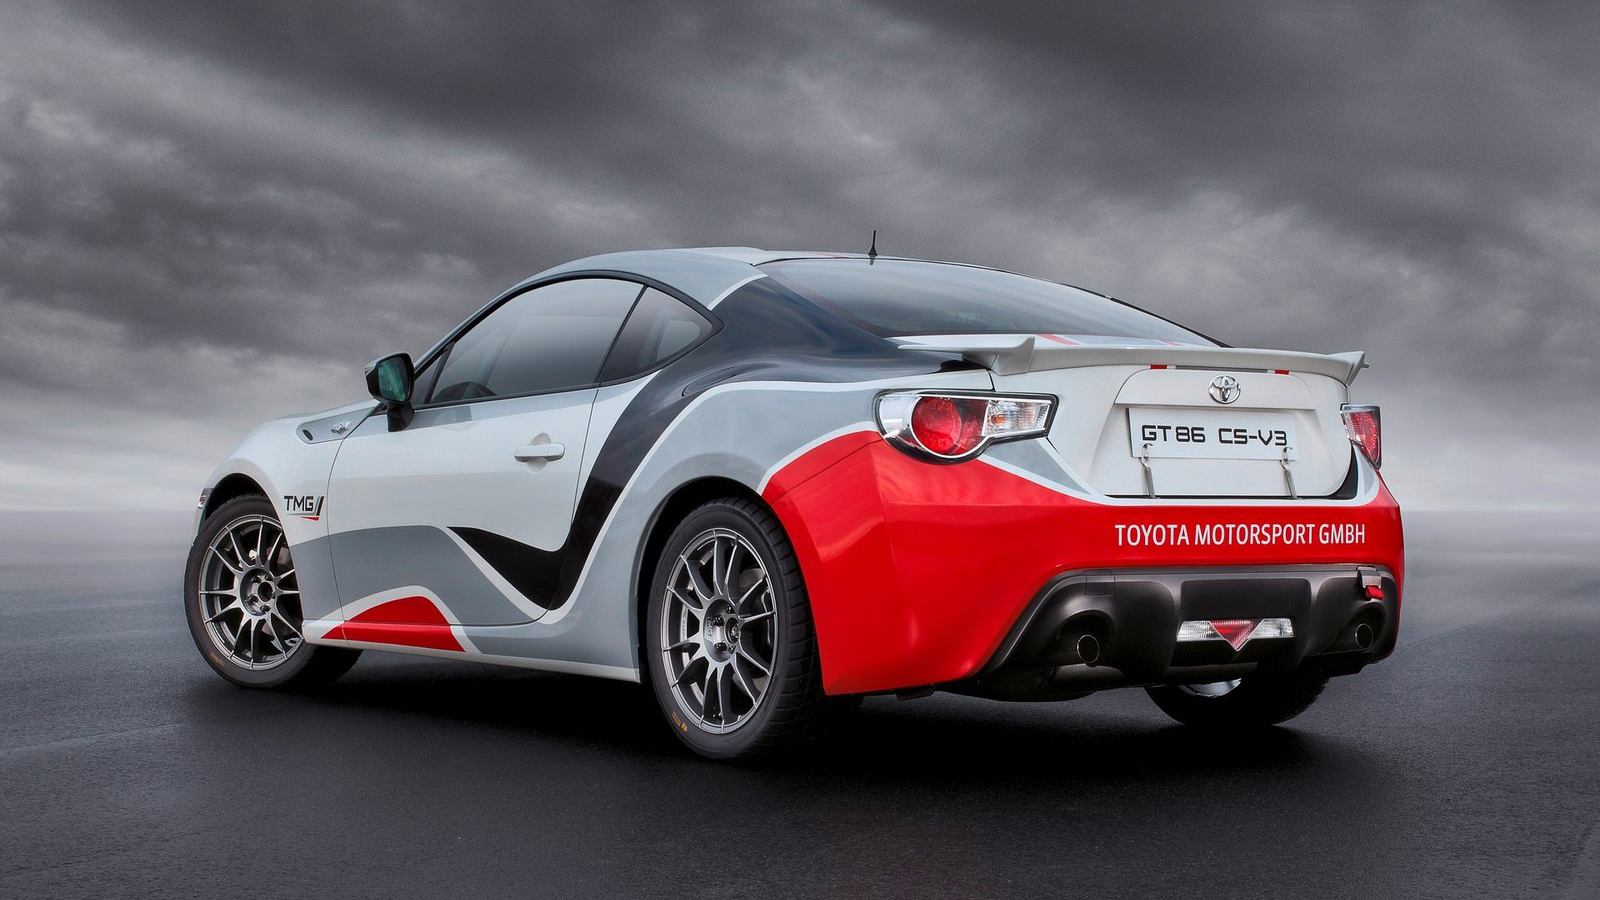 ... Toyota Motorsport GmbH (TMG) launched the cost-effective TMG GT86 CS